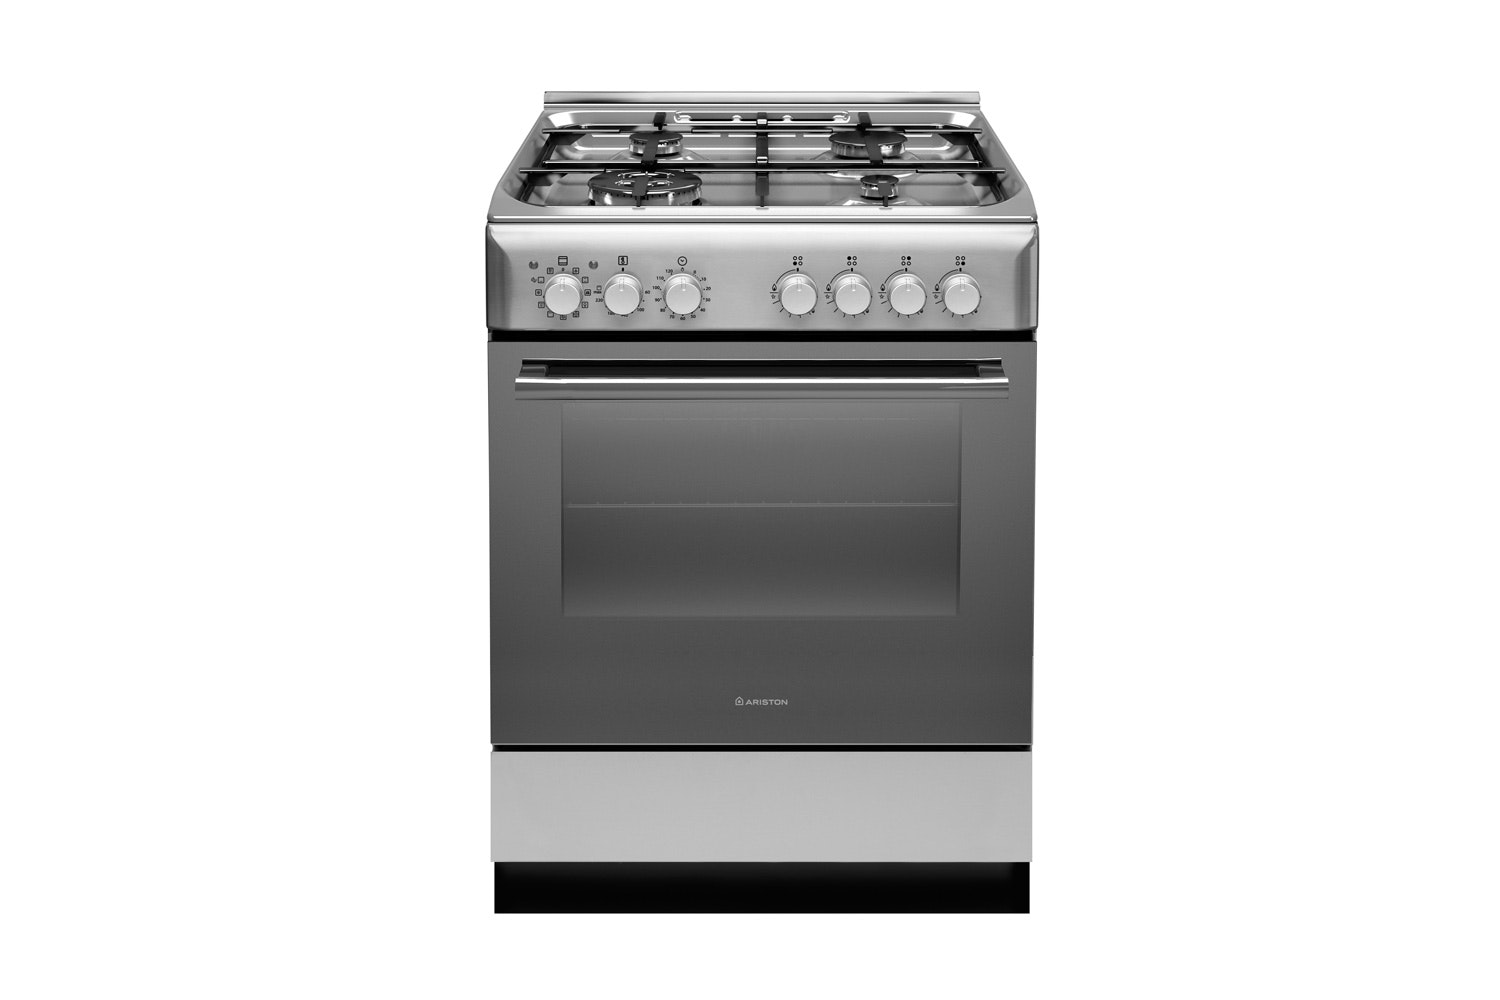 Ariston 60cm Freestanding Electric Oven With Gas Cooktop   Stainless Steel  | Harvey Norman New Zealand